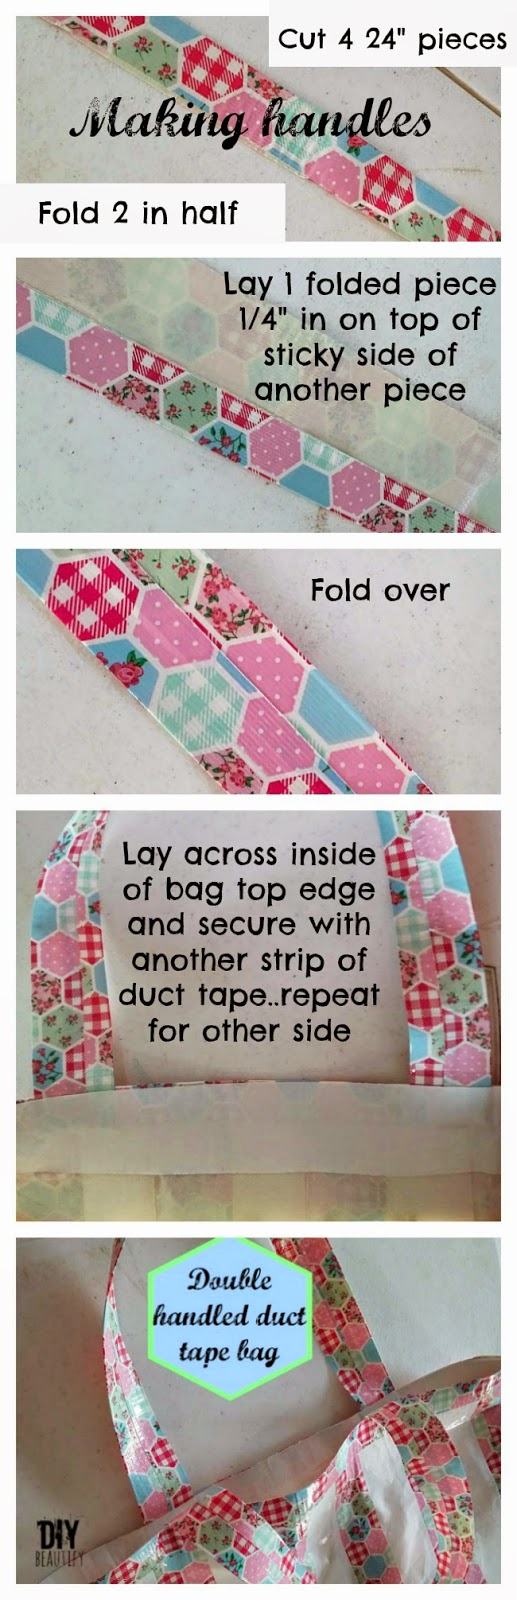 Instructions for a waterproof DIY duct tape beach bag with handles